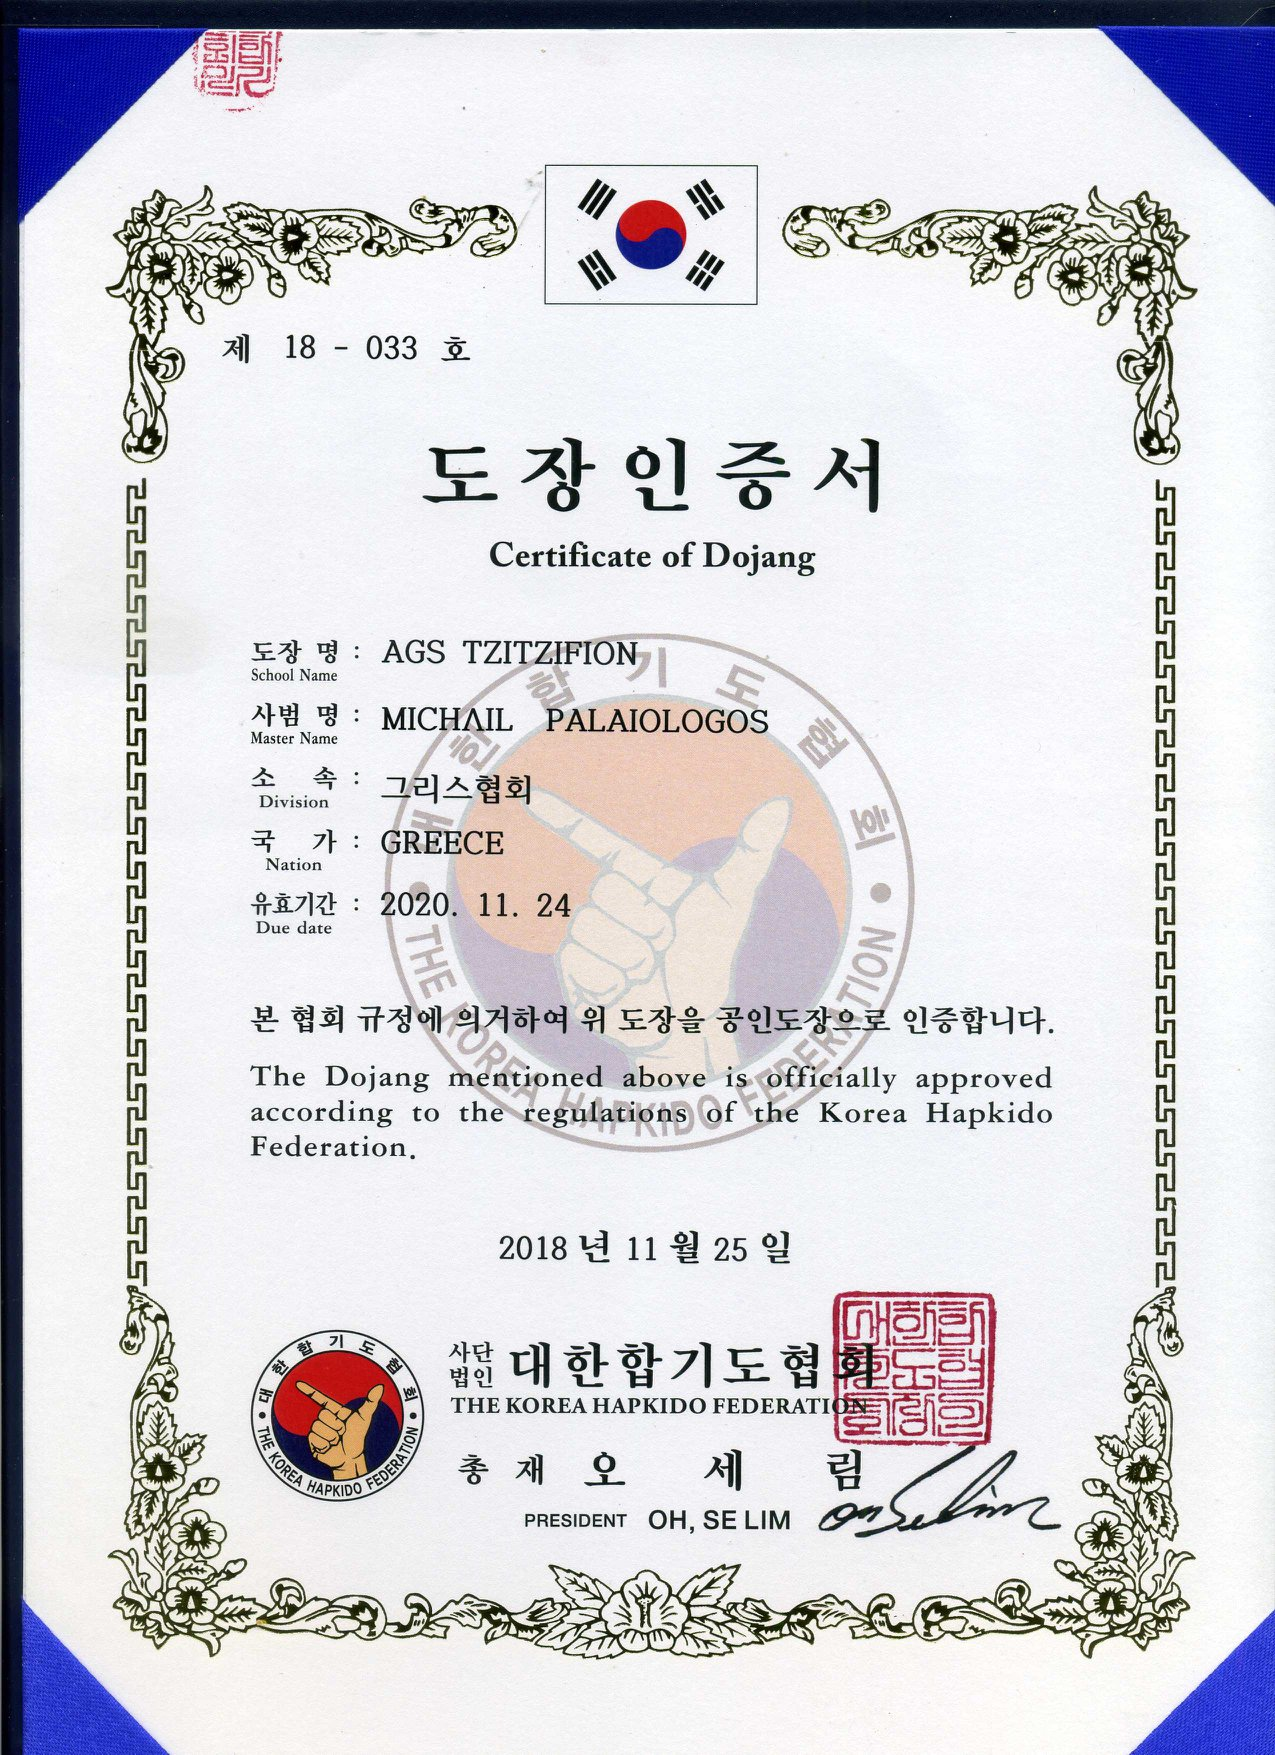 Certificate of Dojang - AGS Tzitzifion - The Korea Hapkido Federation